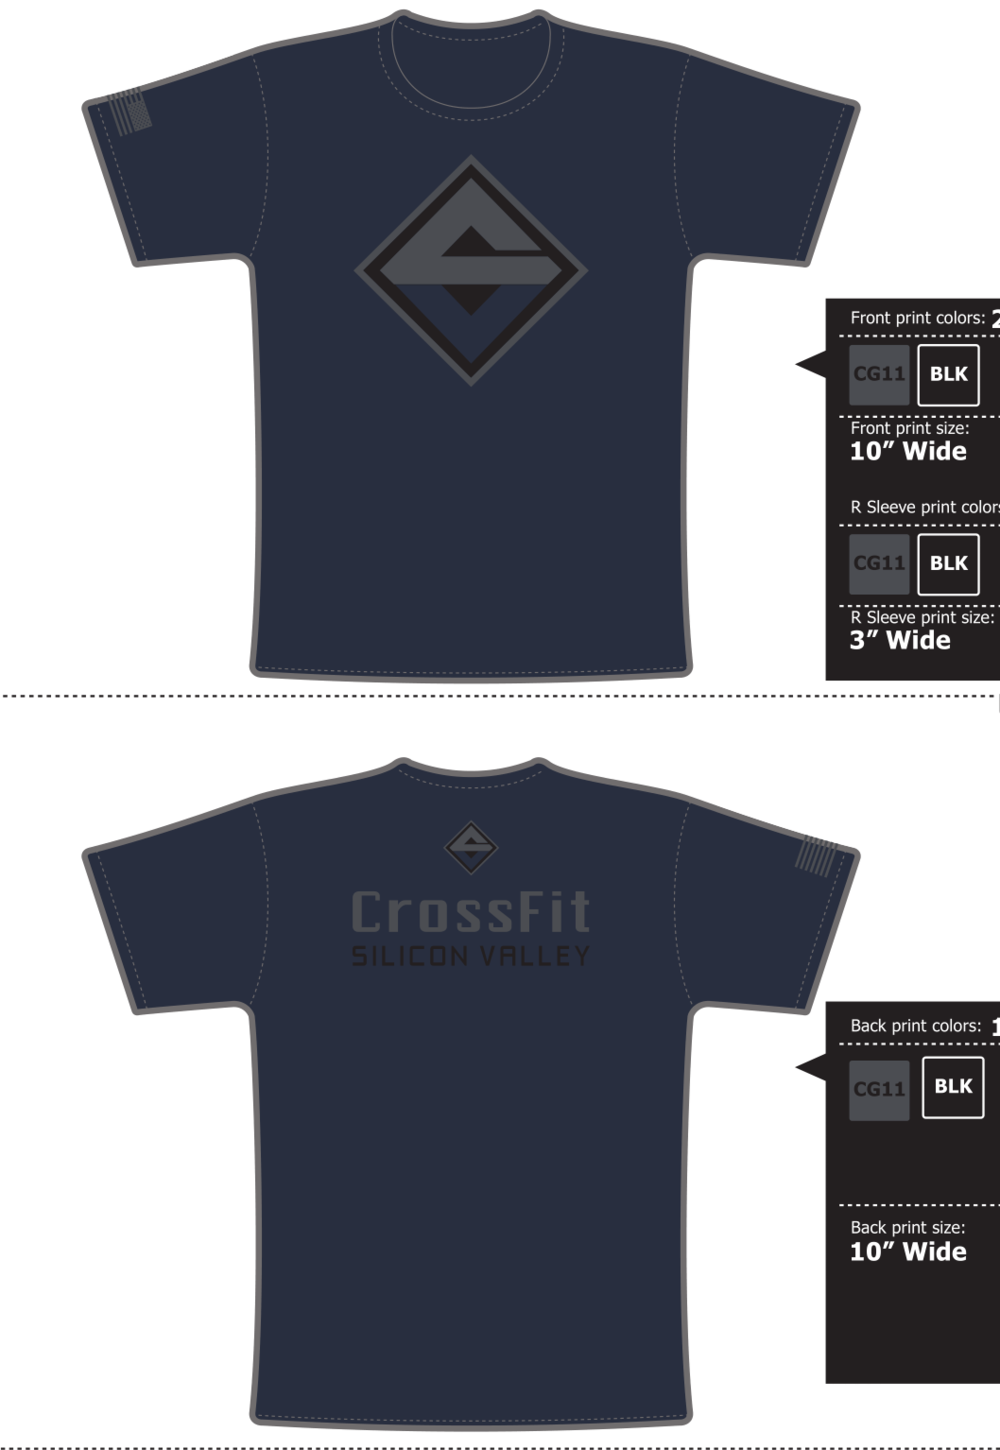 Please pre-order CFSV shirts and hoodies!   The shirt designs are done! We just need to place the order.  We need the following: PayPal or Wodify Tab $40 for Hoodie, $25 for Shirt Specify (Quantity/Style/Size-Sm, M, Lg, XL, XXL)  Payment type: Wodify Tab OR Send PayPal to judd.xavier@gmail.com   Example: Judd Xavier -1 Hoodie Lg, 2 Men's M, PayPal sent!